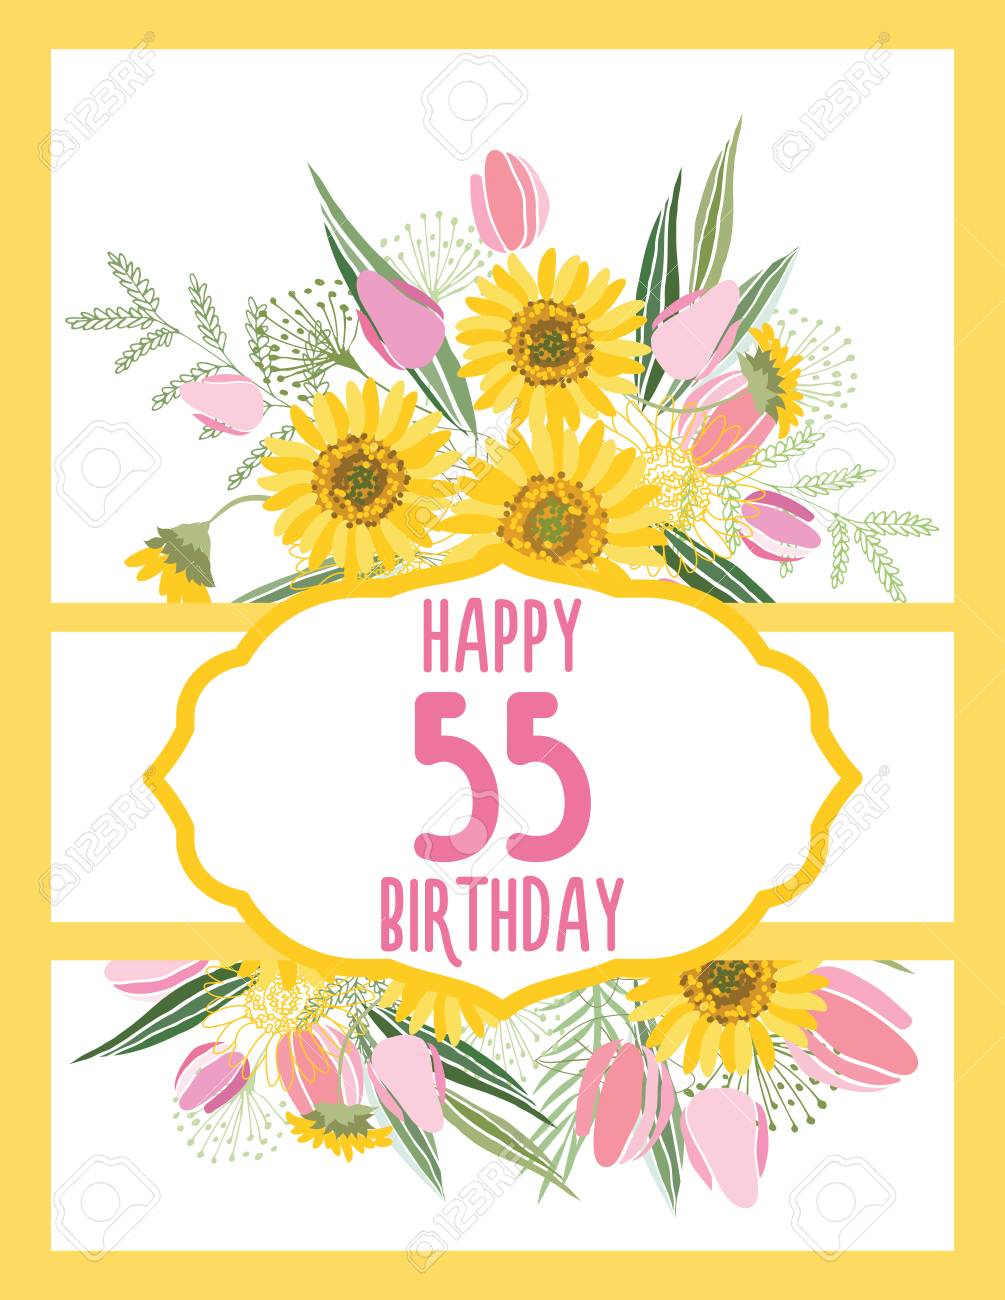 Greeting Card For Anniversary Birthday Flower Composition To